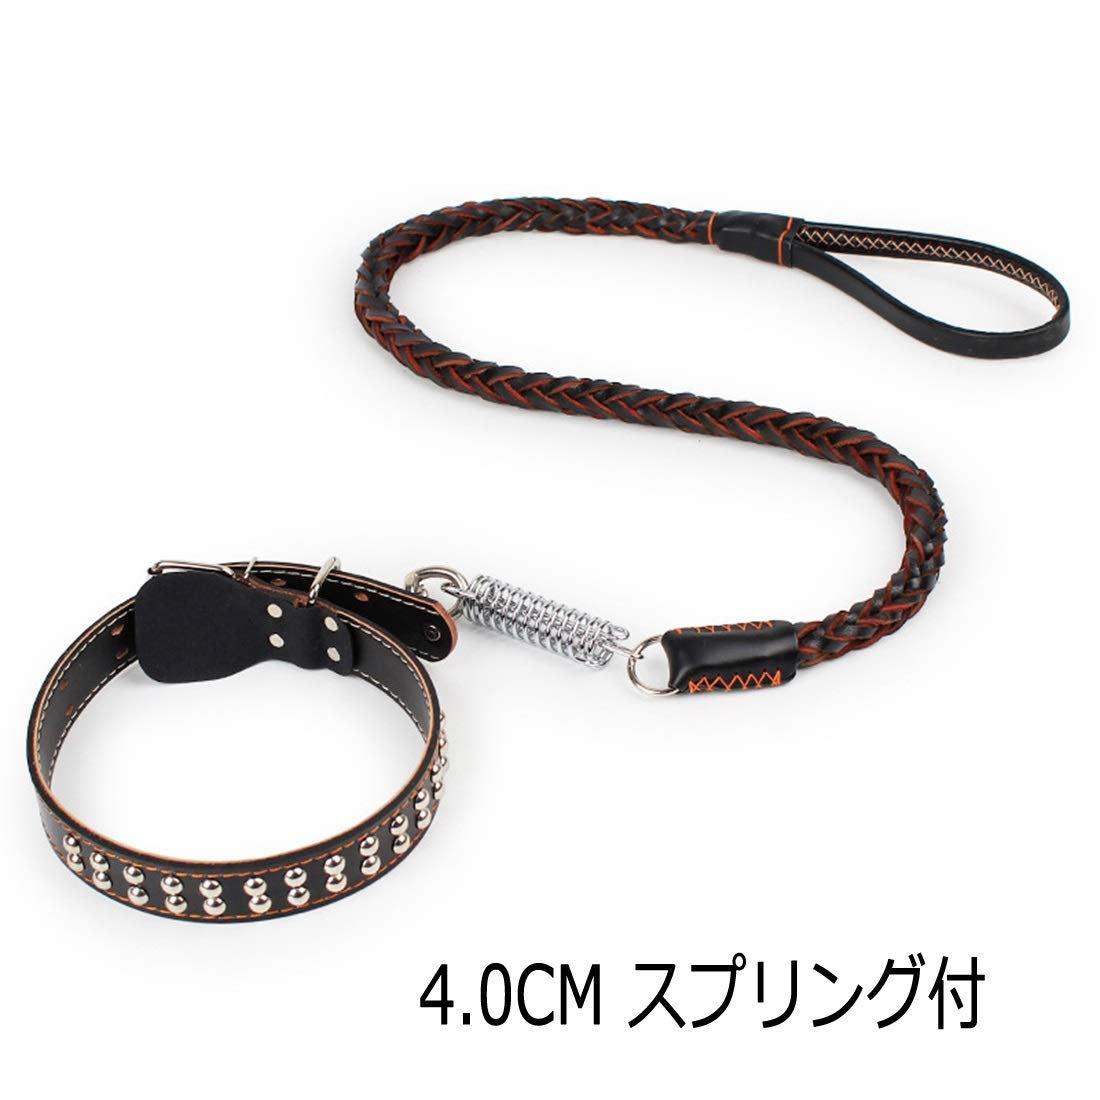 4.0cm Spring YY4 Dog extendable Lead Impact Resistance Collar Harness Lead lace-up Leather Spring Training Discipline Medium Dog Large Dog Walk Walking Trainer unstretched Tow Rope (Size   4.0cm Spring)